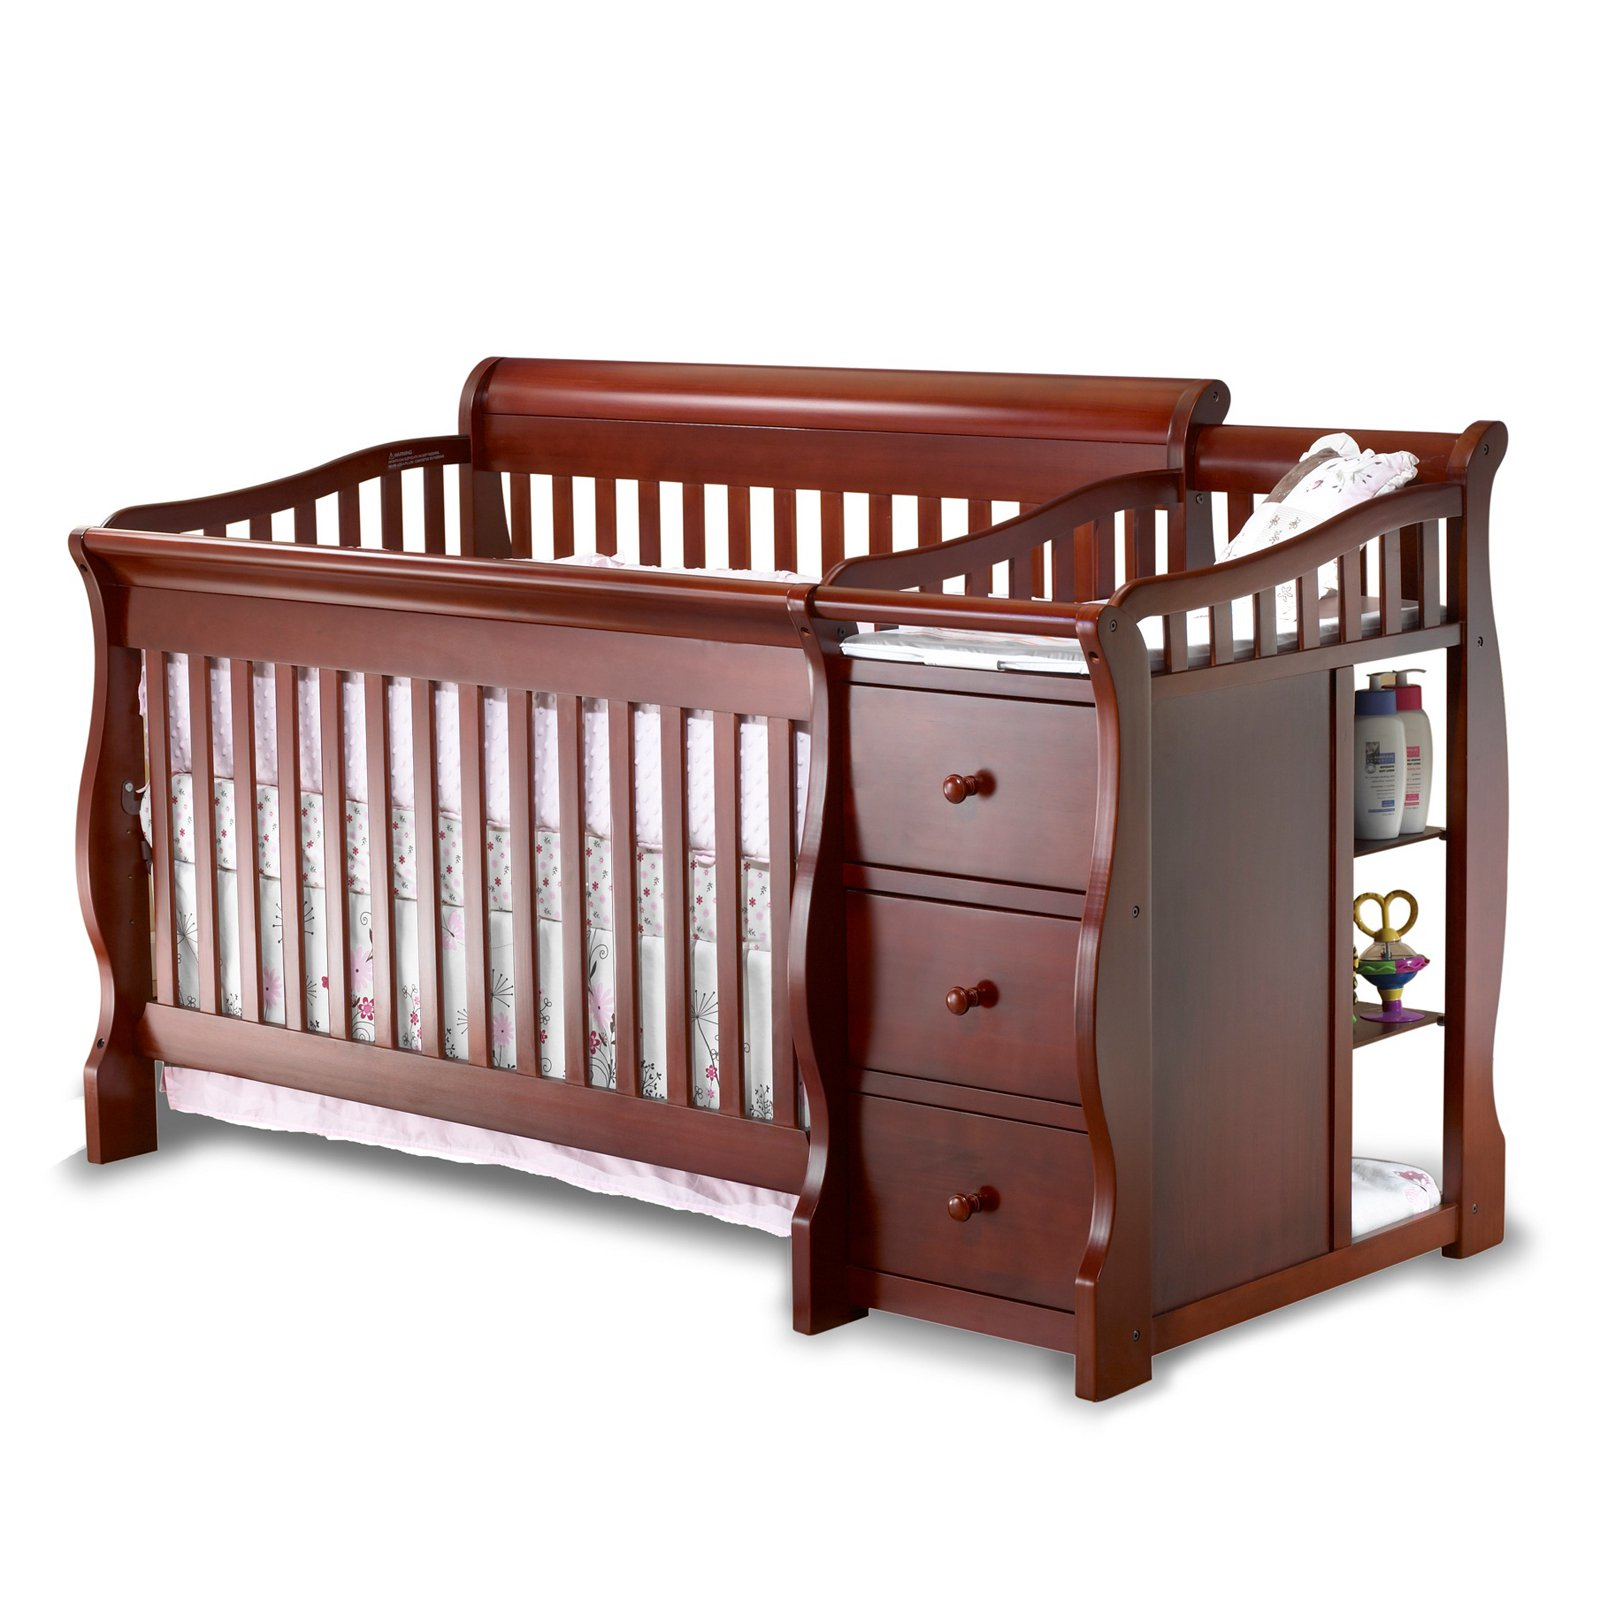 Baby Cache Heritage Conversion Kit | Baby Beds at Babies R Us | Baby Cache Heritage Lifetime Convertible Crib